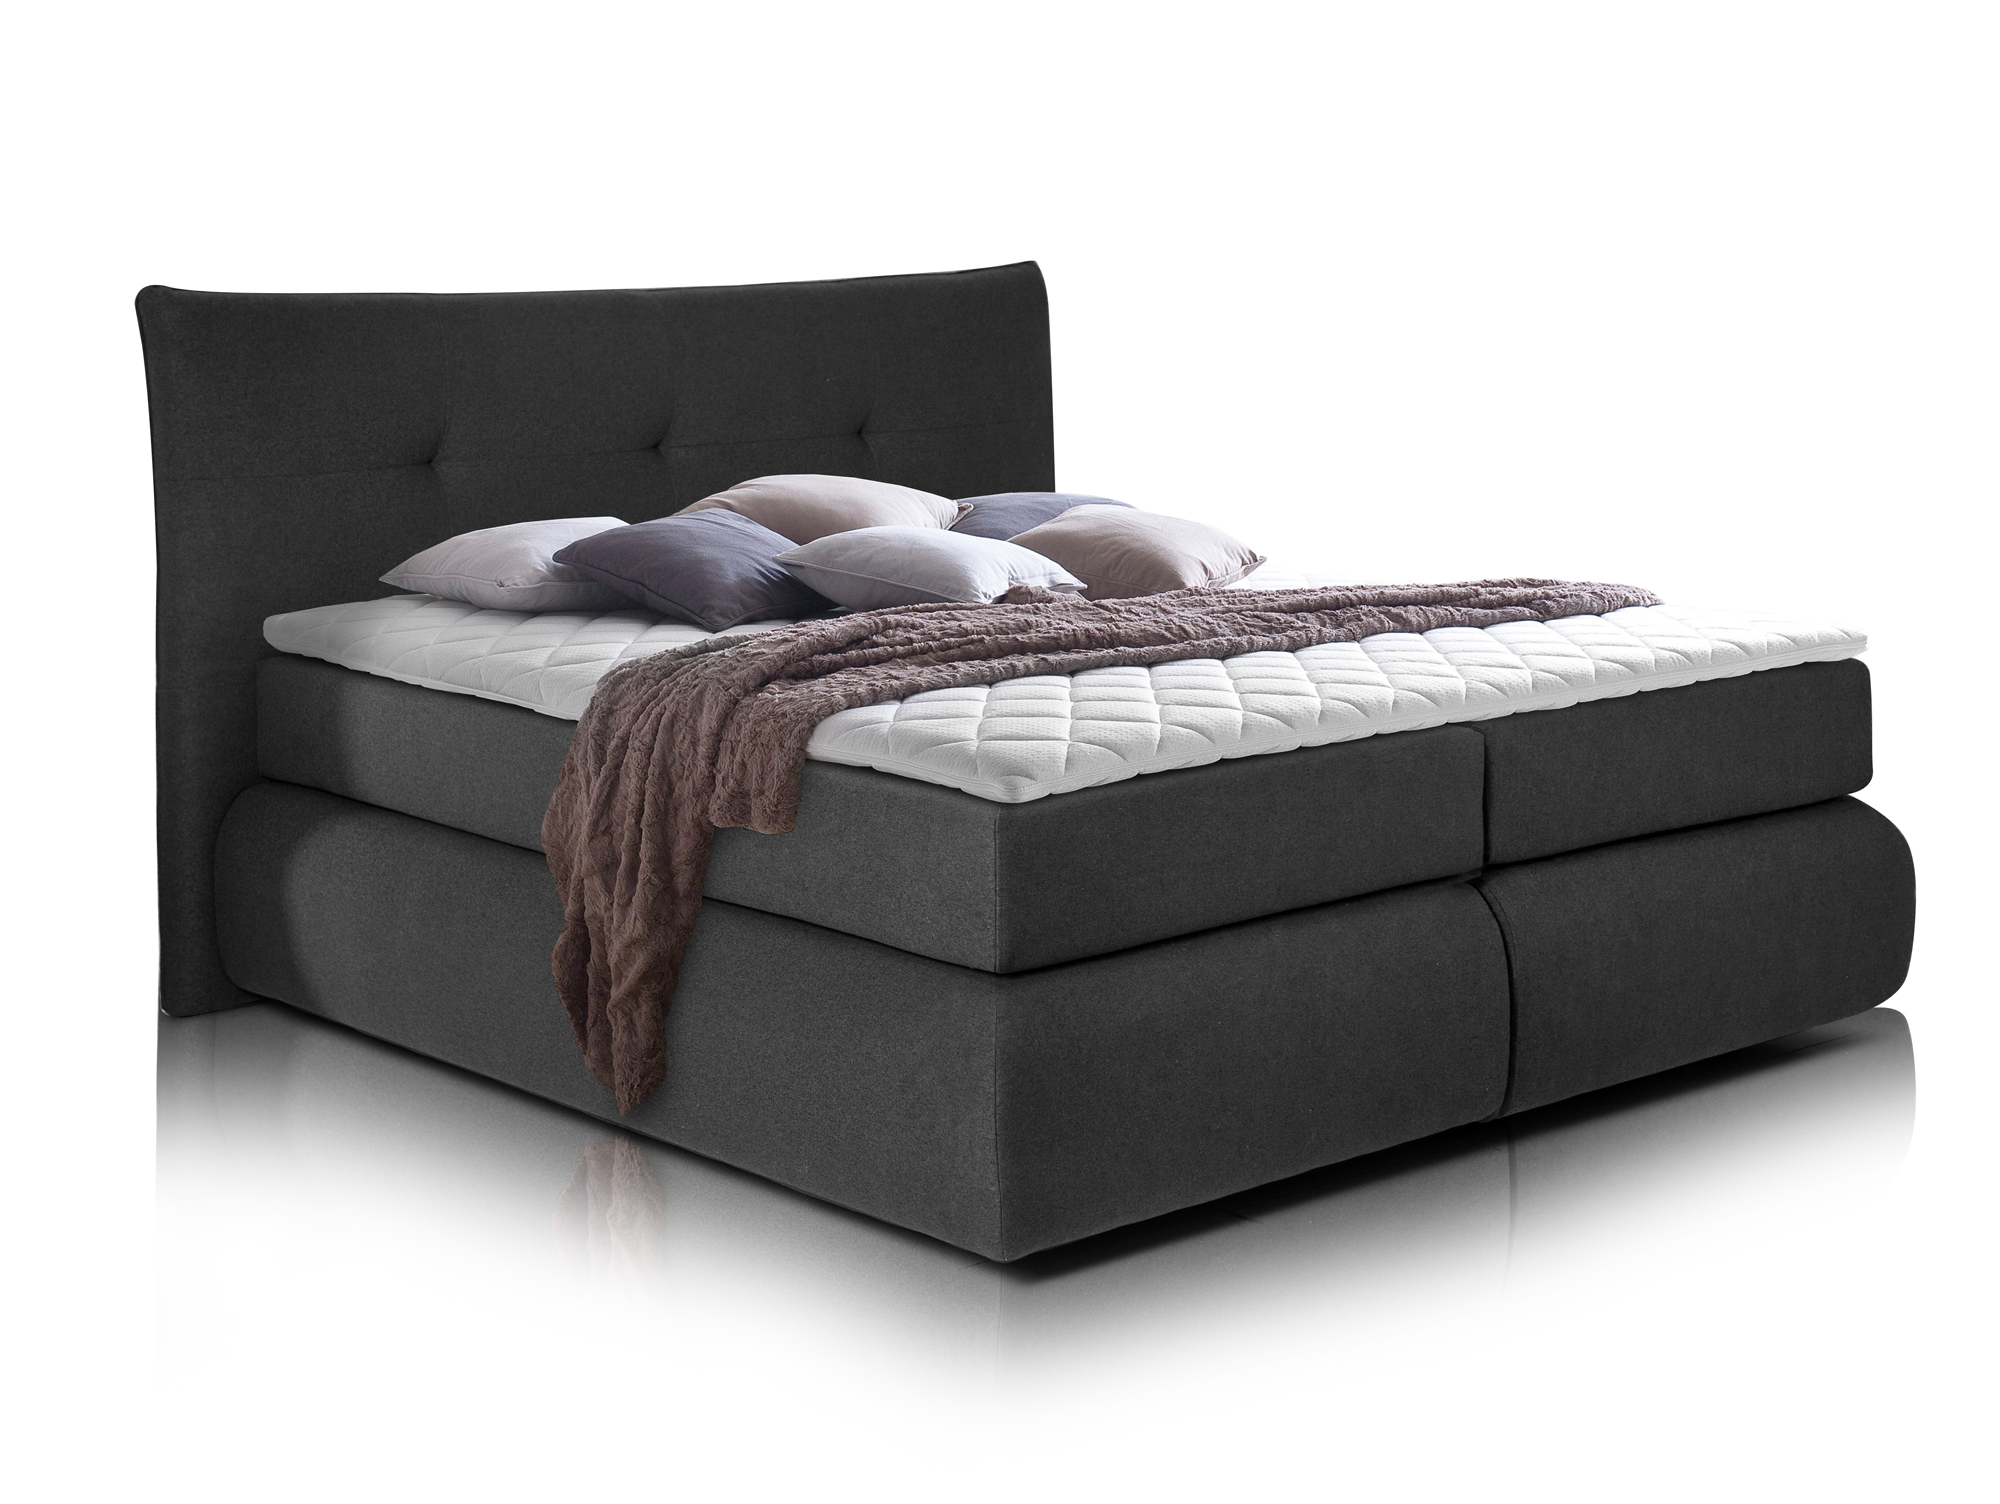 paris ii boxspringbett inklusive kopfteil 160 x 200 cm anthrazit h rtegrad 3. Black Bedroom Furniture Sets. Home Design Ideas